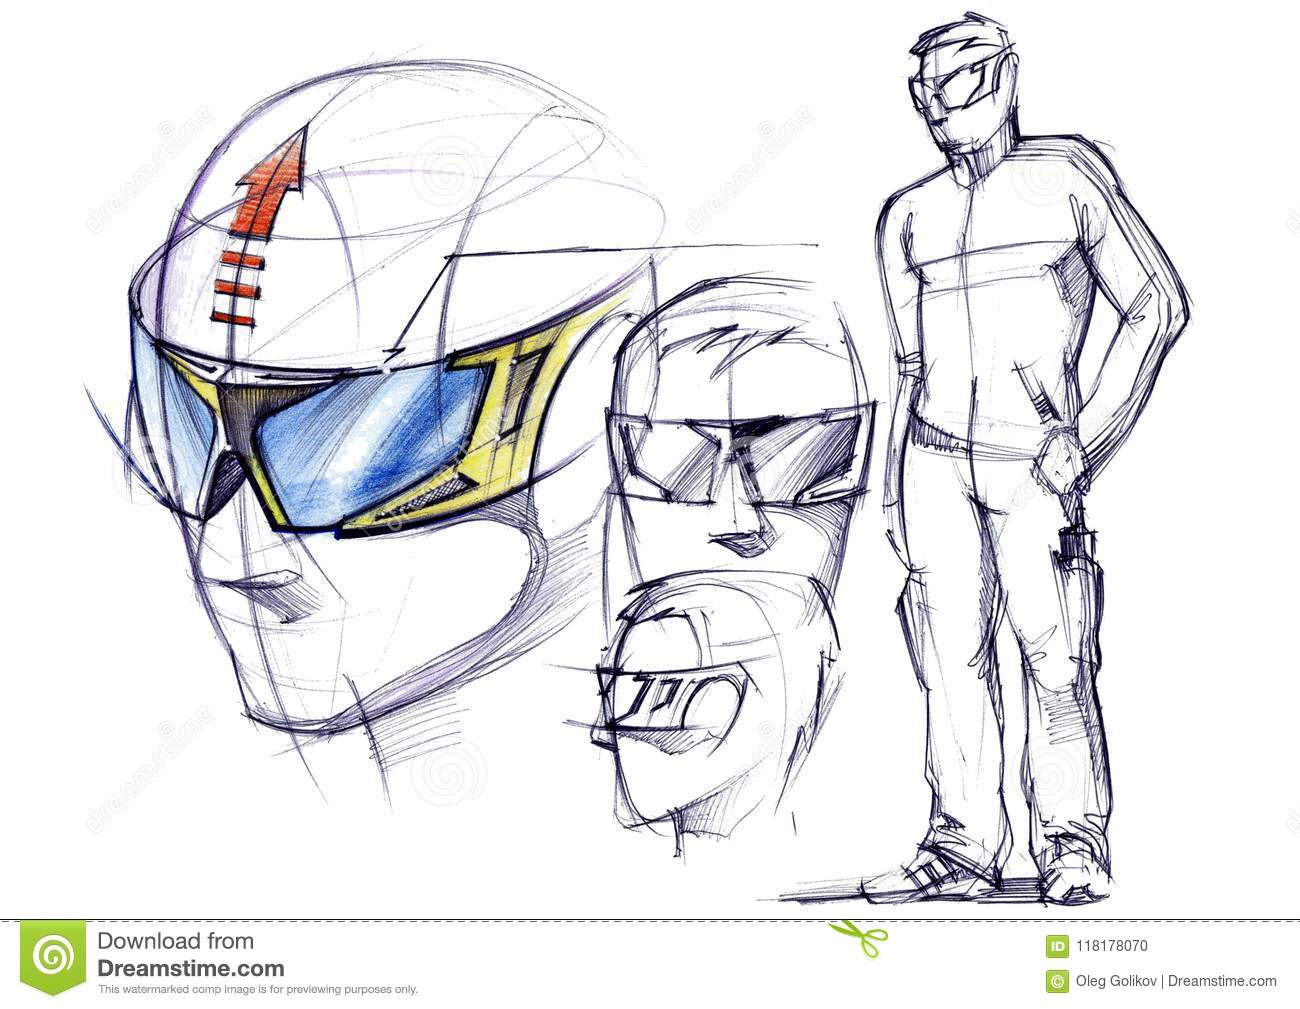 Sketch project of conceptual protective glasses for active sports.